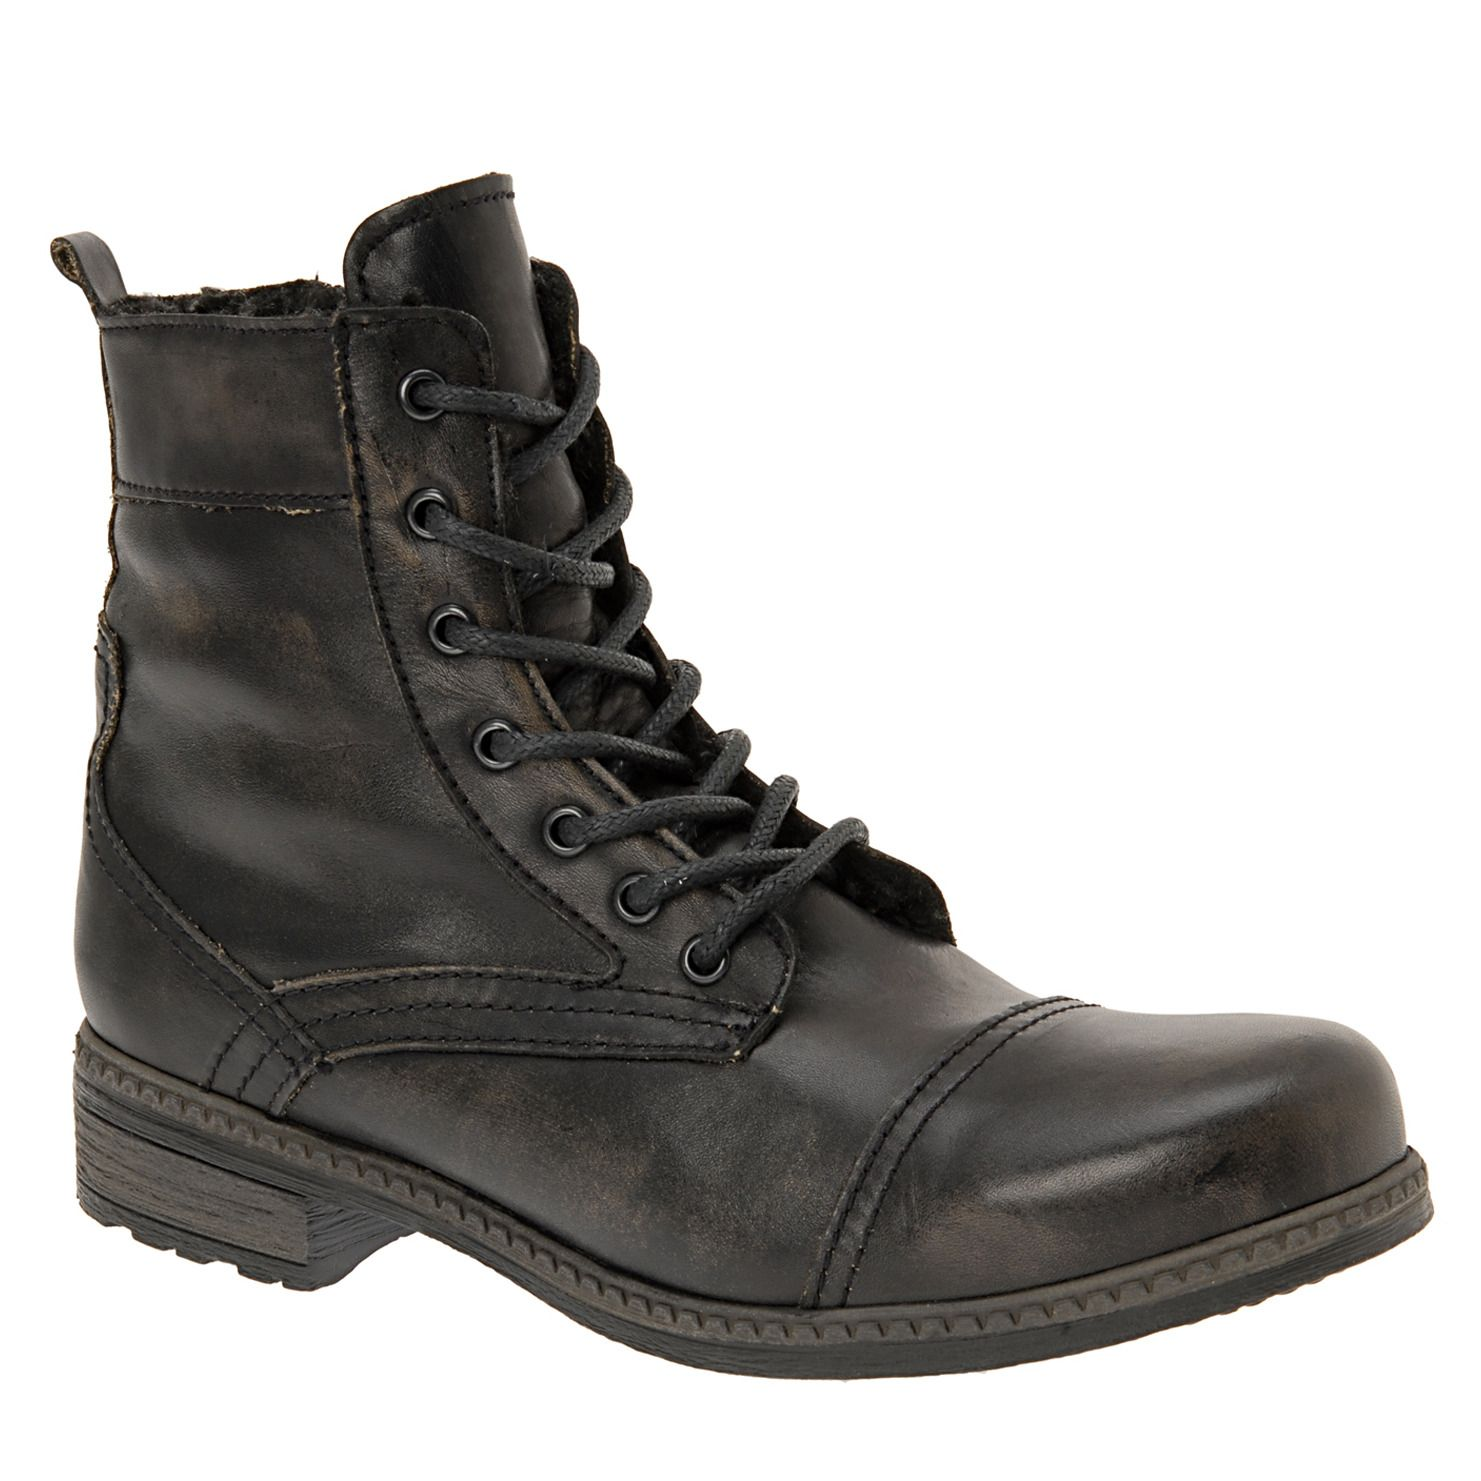 Buy BOLLBACH men s boots casual boots at Call it Spring. Free Shipping! 2fd93e98d5b6